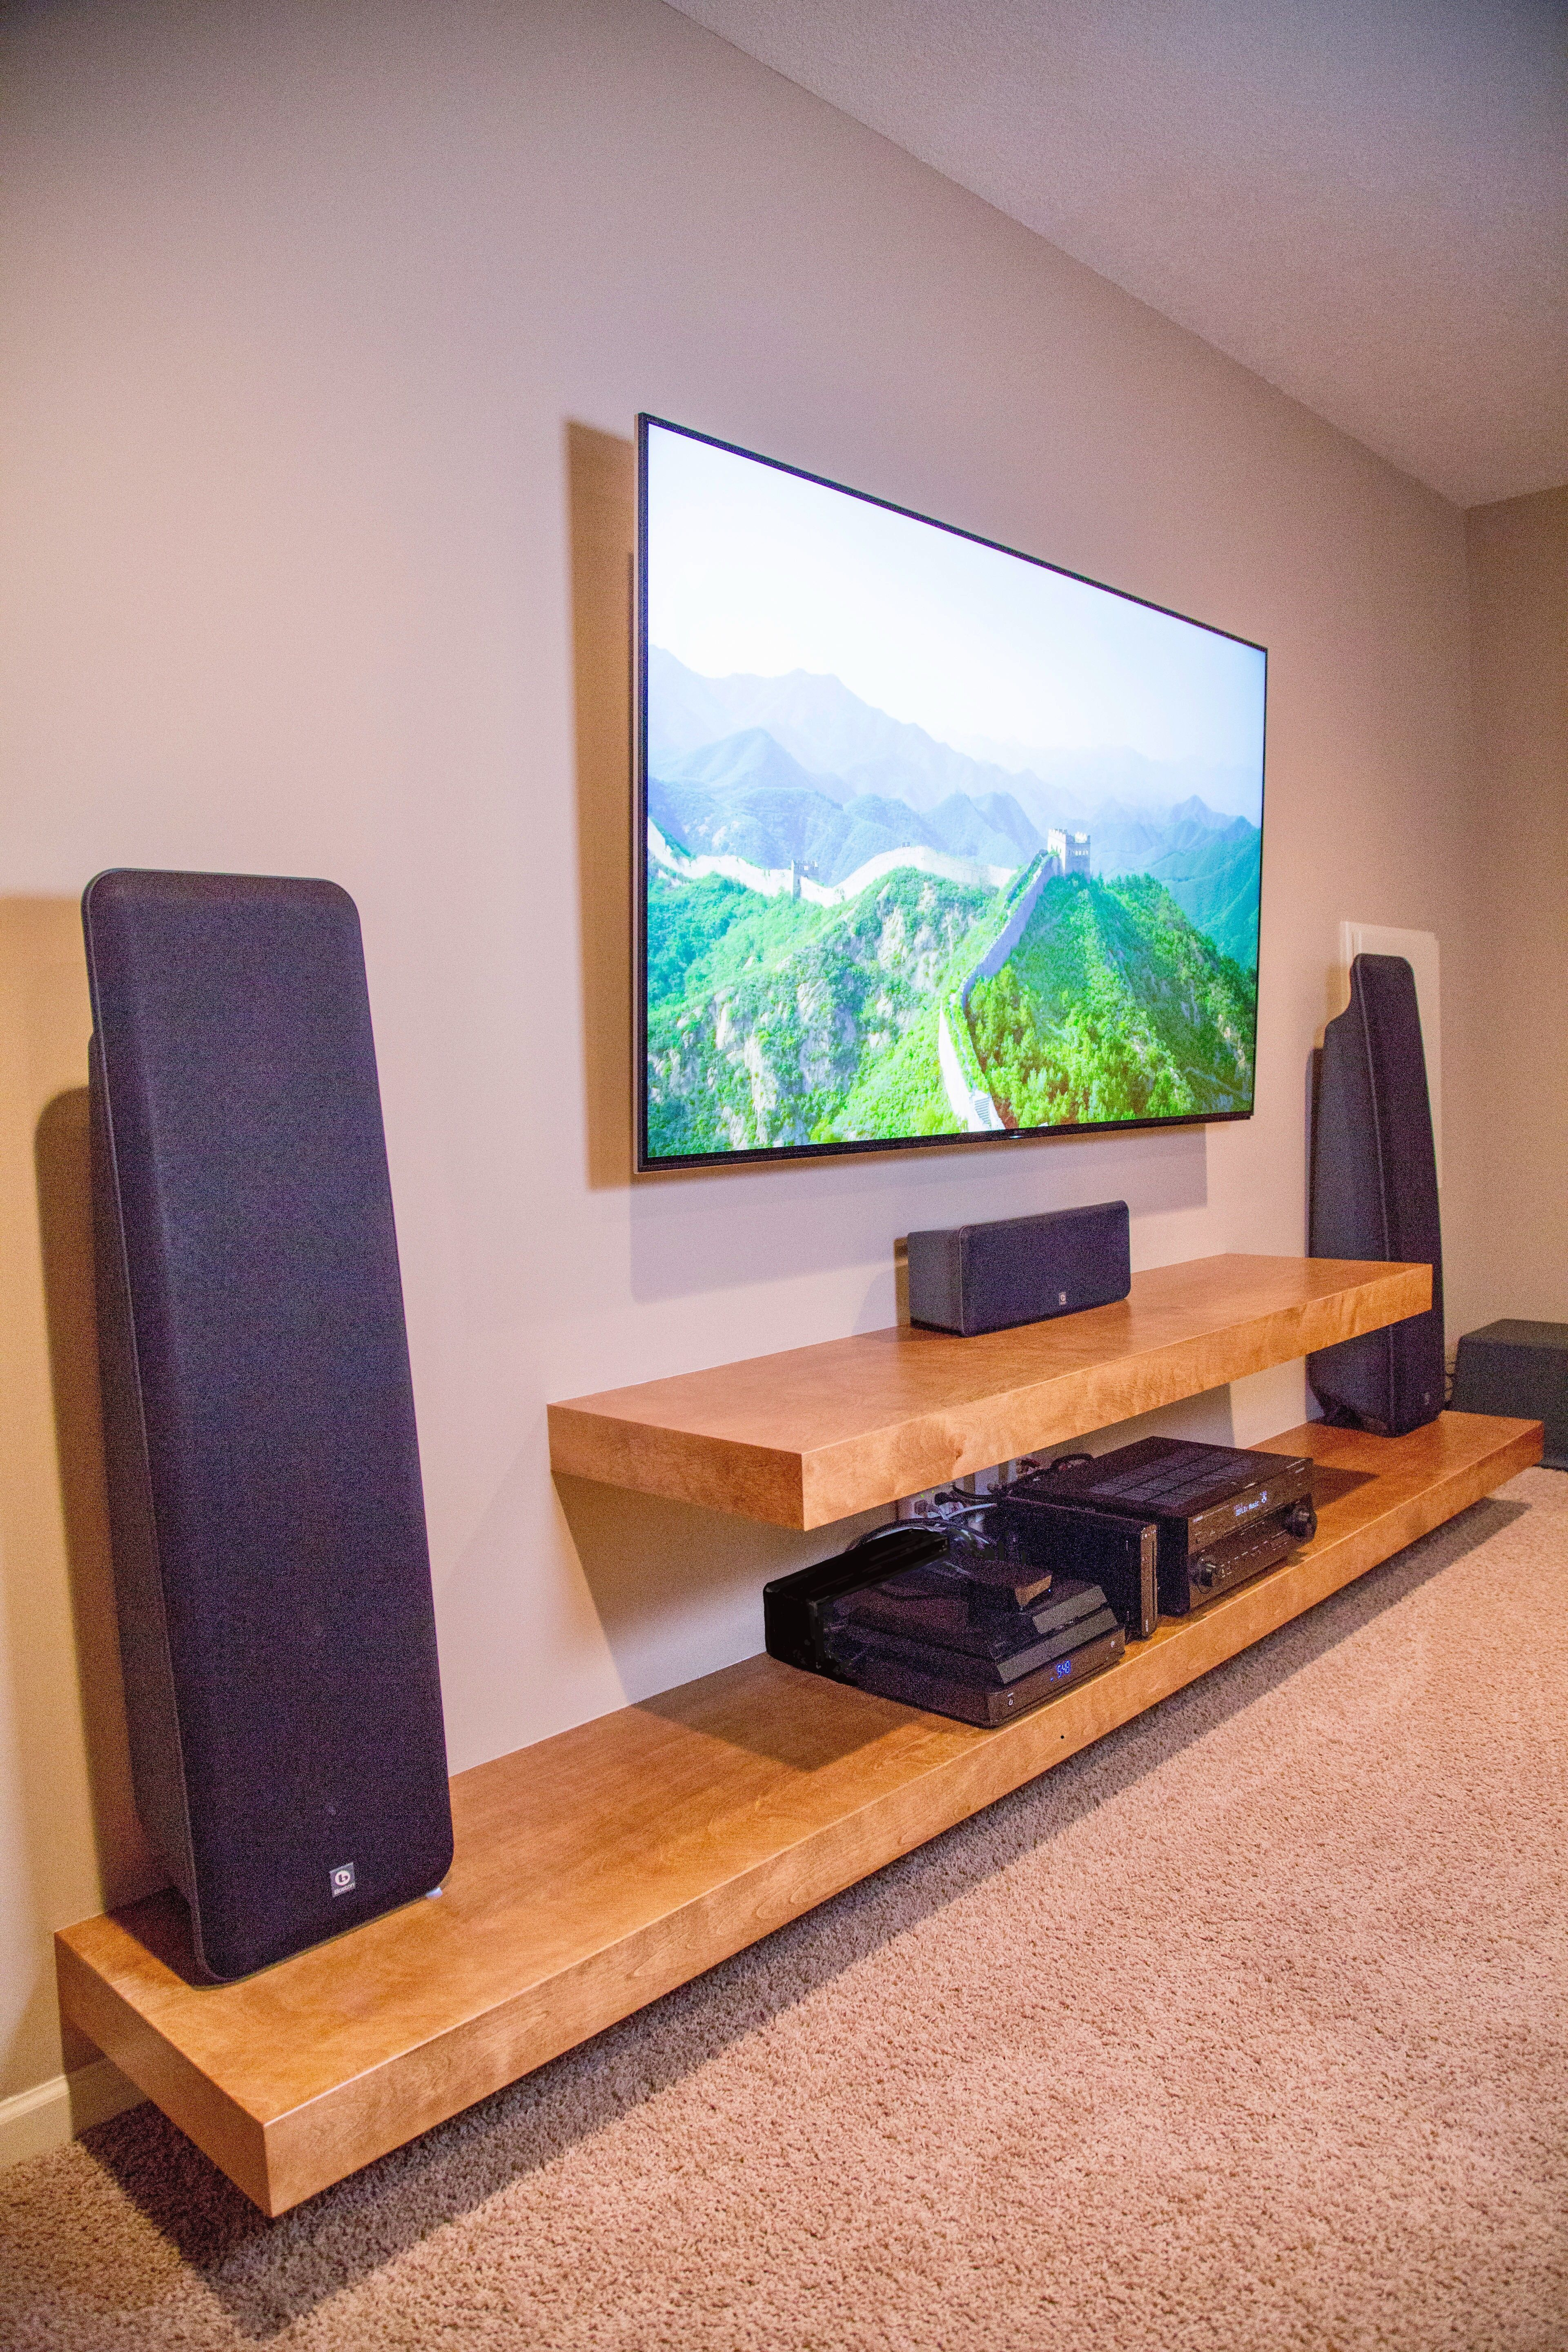 Unordinary Entertainment Centers Design Ideas You Must Try In Your Home31